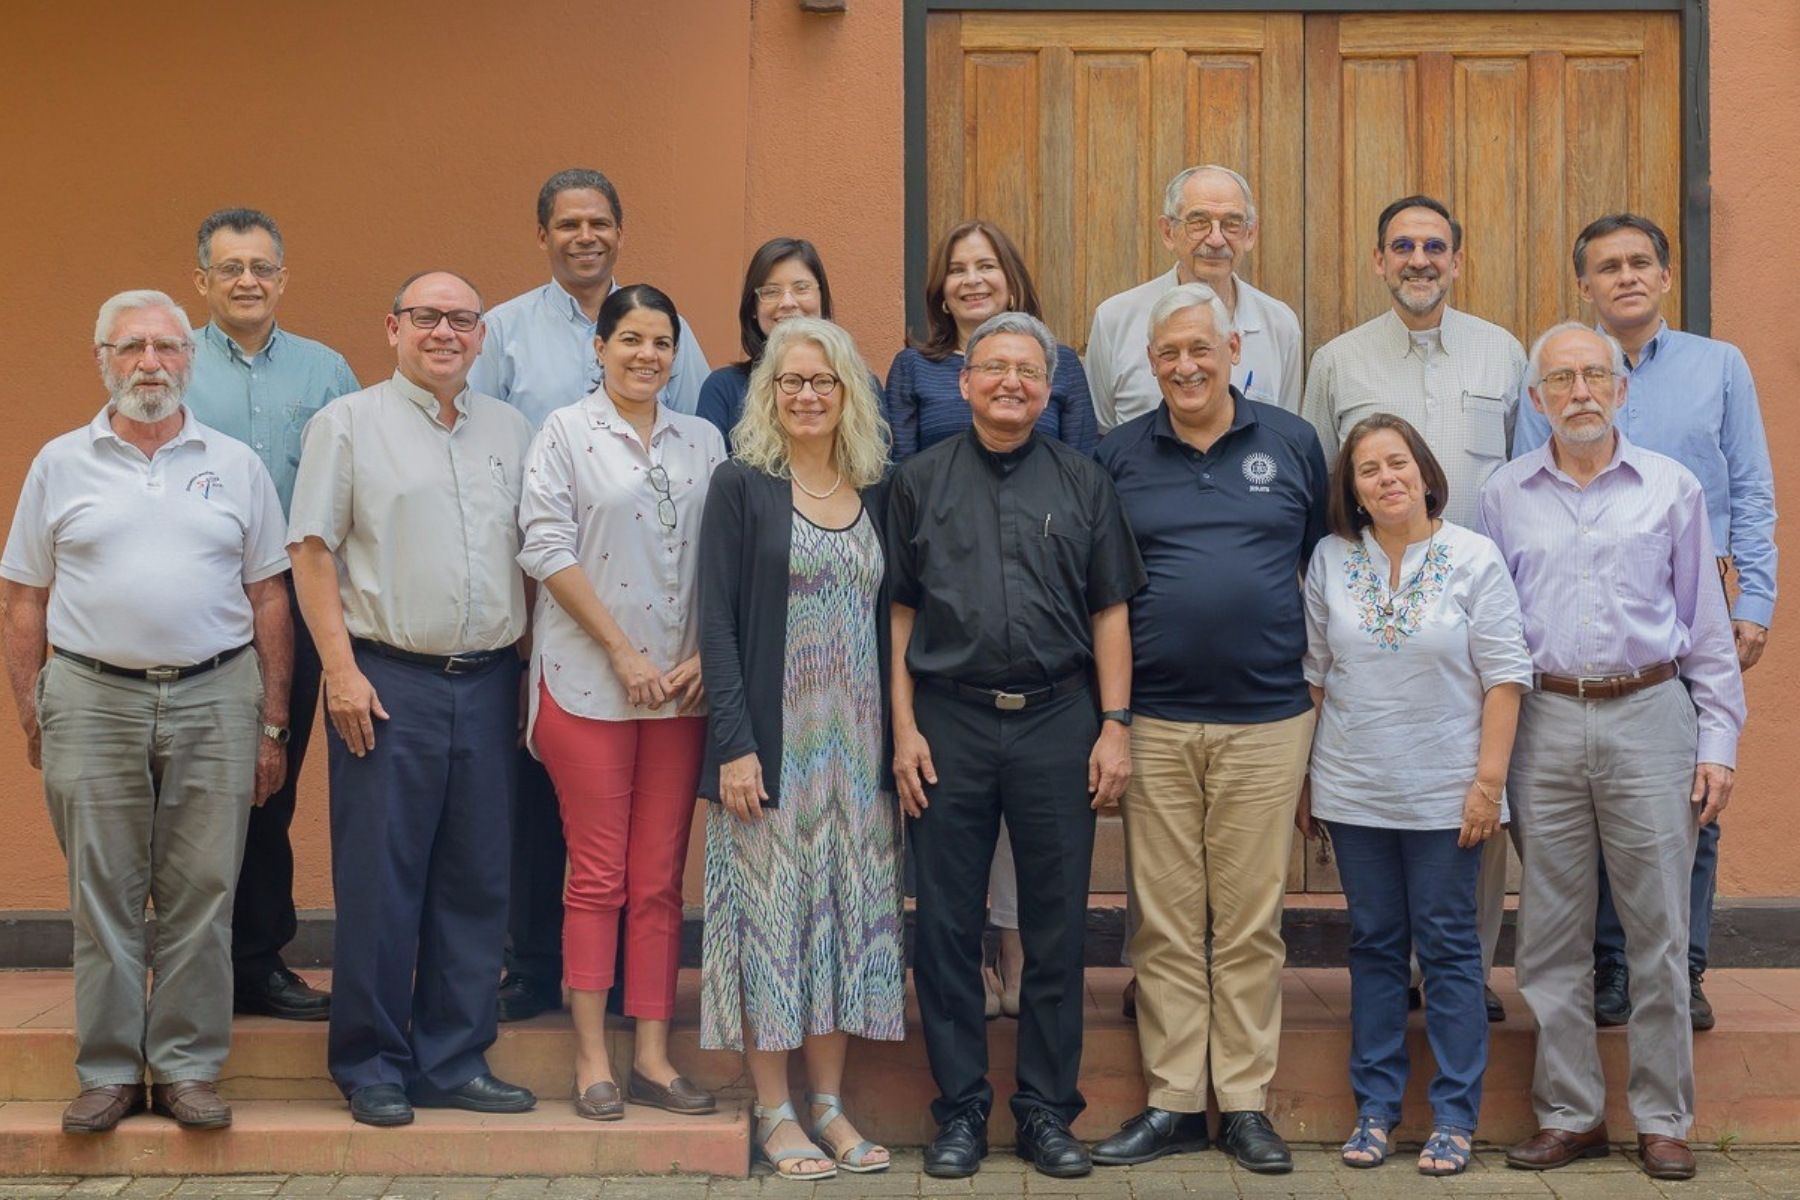 Dr. Serena Cosgrove, UCA President Father Chepe, members of UCA cabinet, and Superior General of the Society of Jesus, Father Arturo Sosa